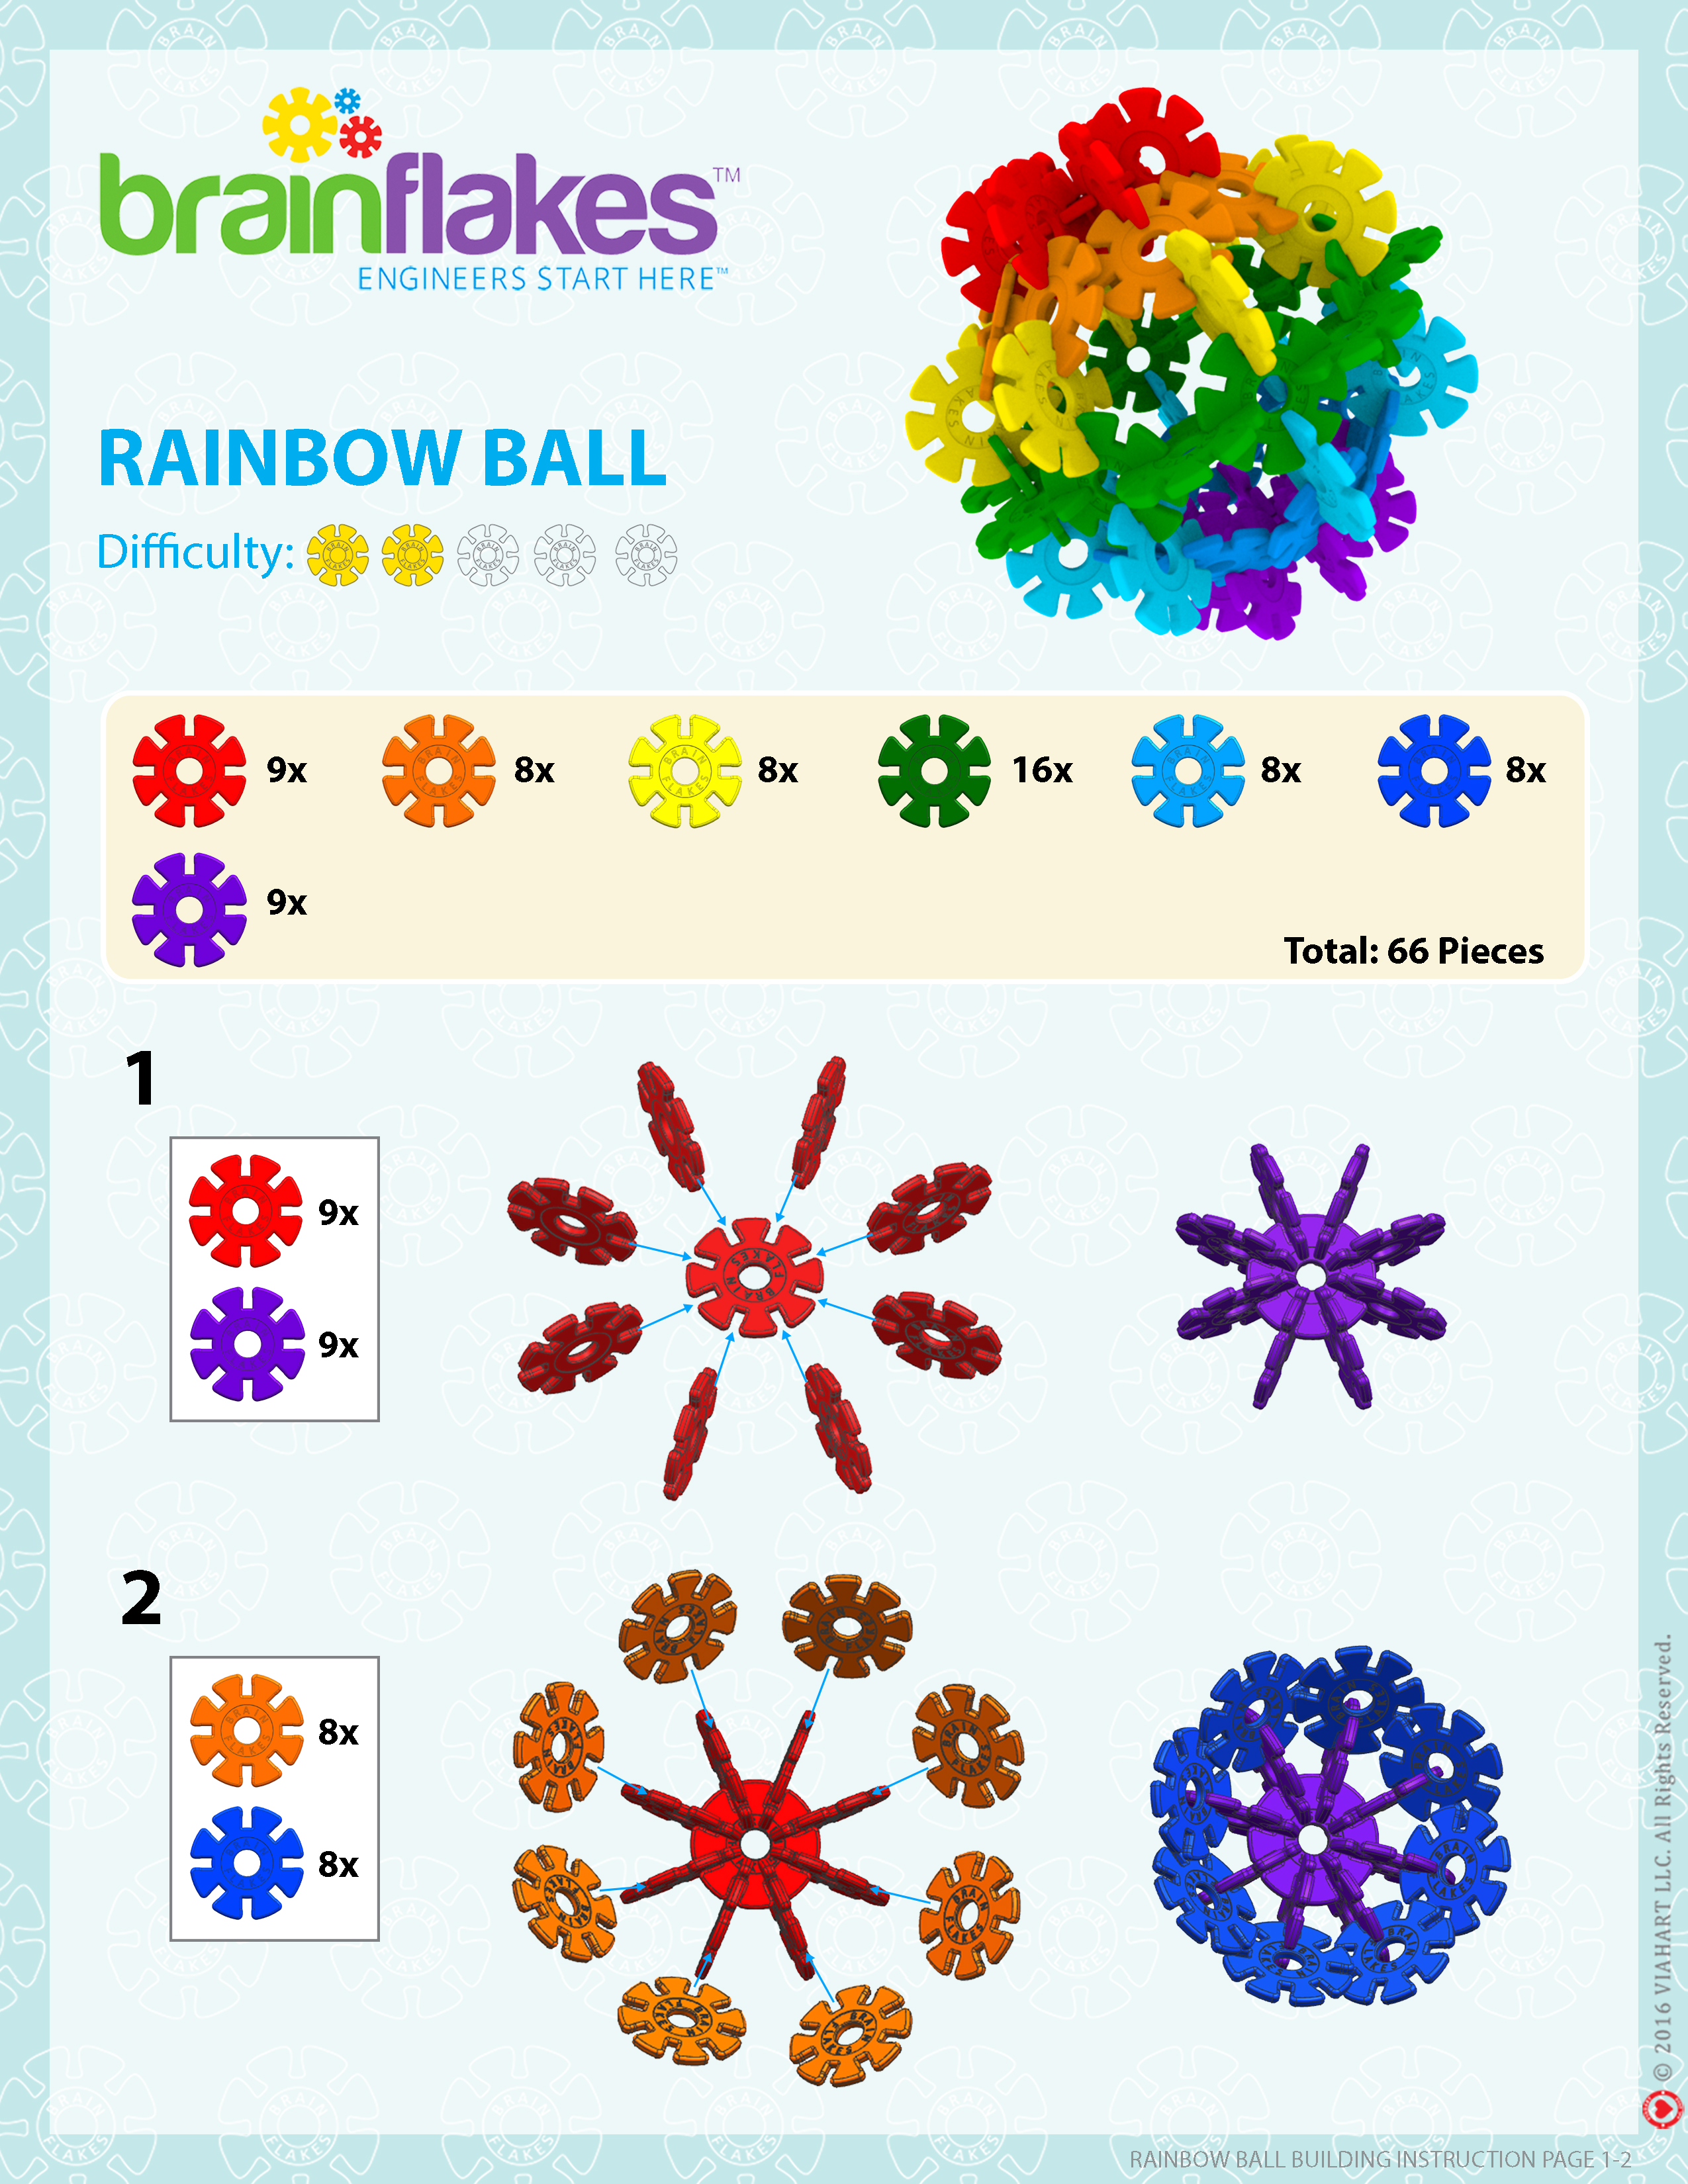 Brain Flakes Rainbow Ball Instructions Page 1